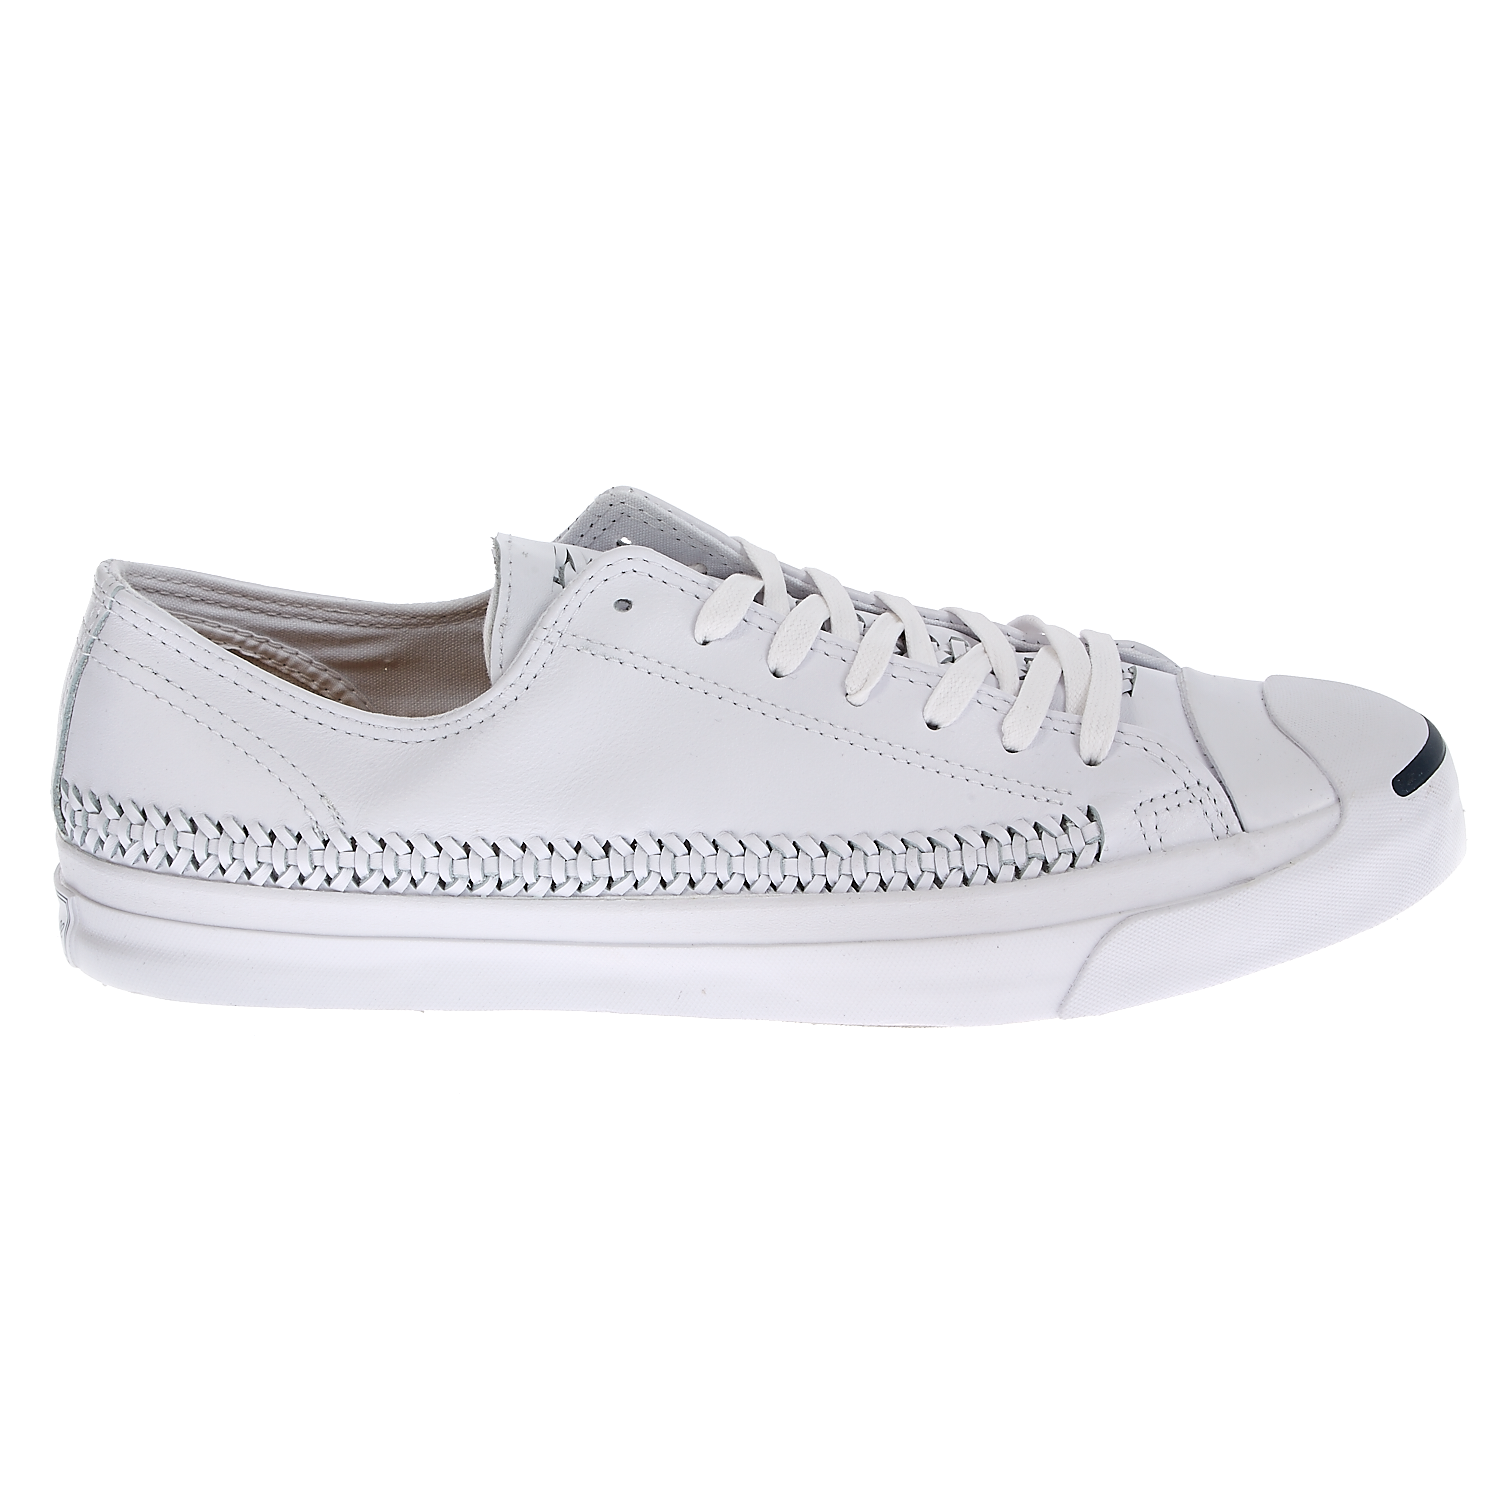 CONVERSE – Unisex παπούτσια Jack Purcell Jack Woven λευκά